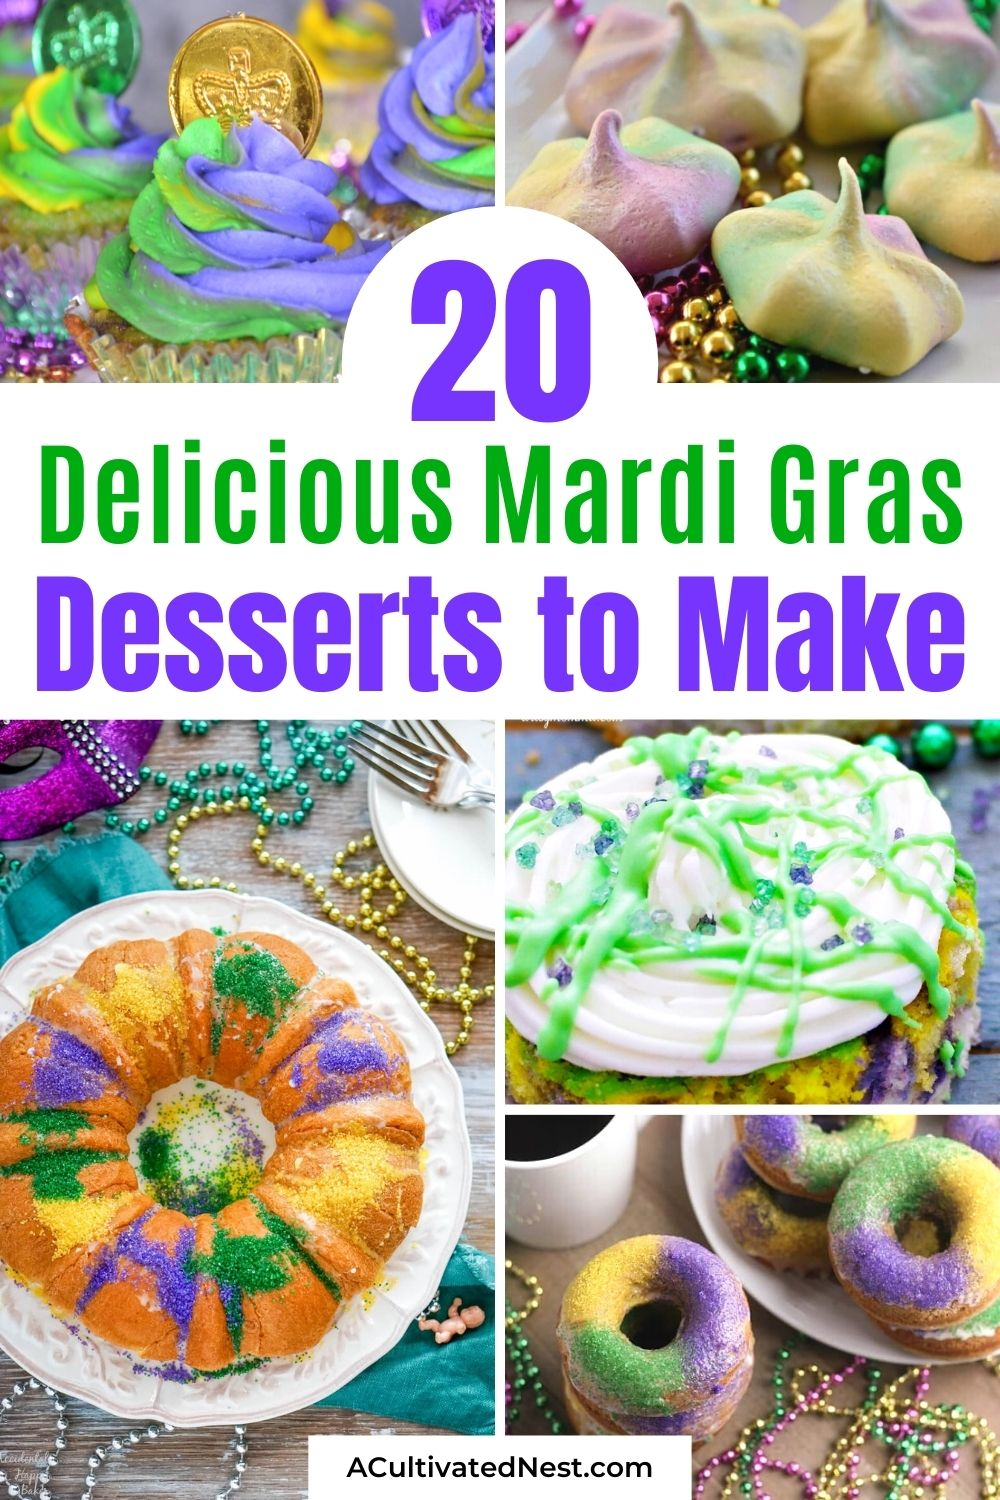 20 Festive Mardi Gras Dessert Recipes- Make your Mardi Gras celebration even more fun with some of these delicious Mardi Gras dessert recipes! They're so colorful, and so tasty! | #MardiGras #MardiGrasDesserts #MardiGrasFood #dessertRecipes #ACultivatedNest